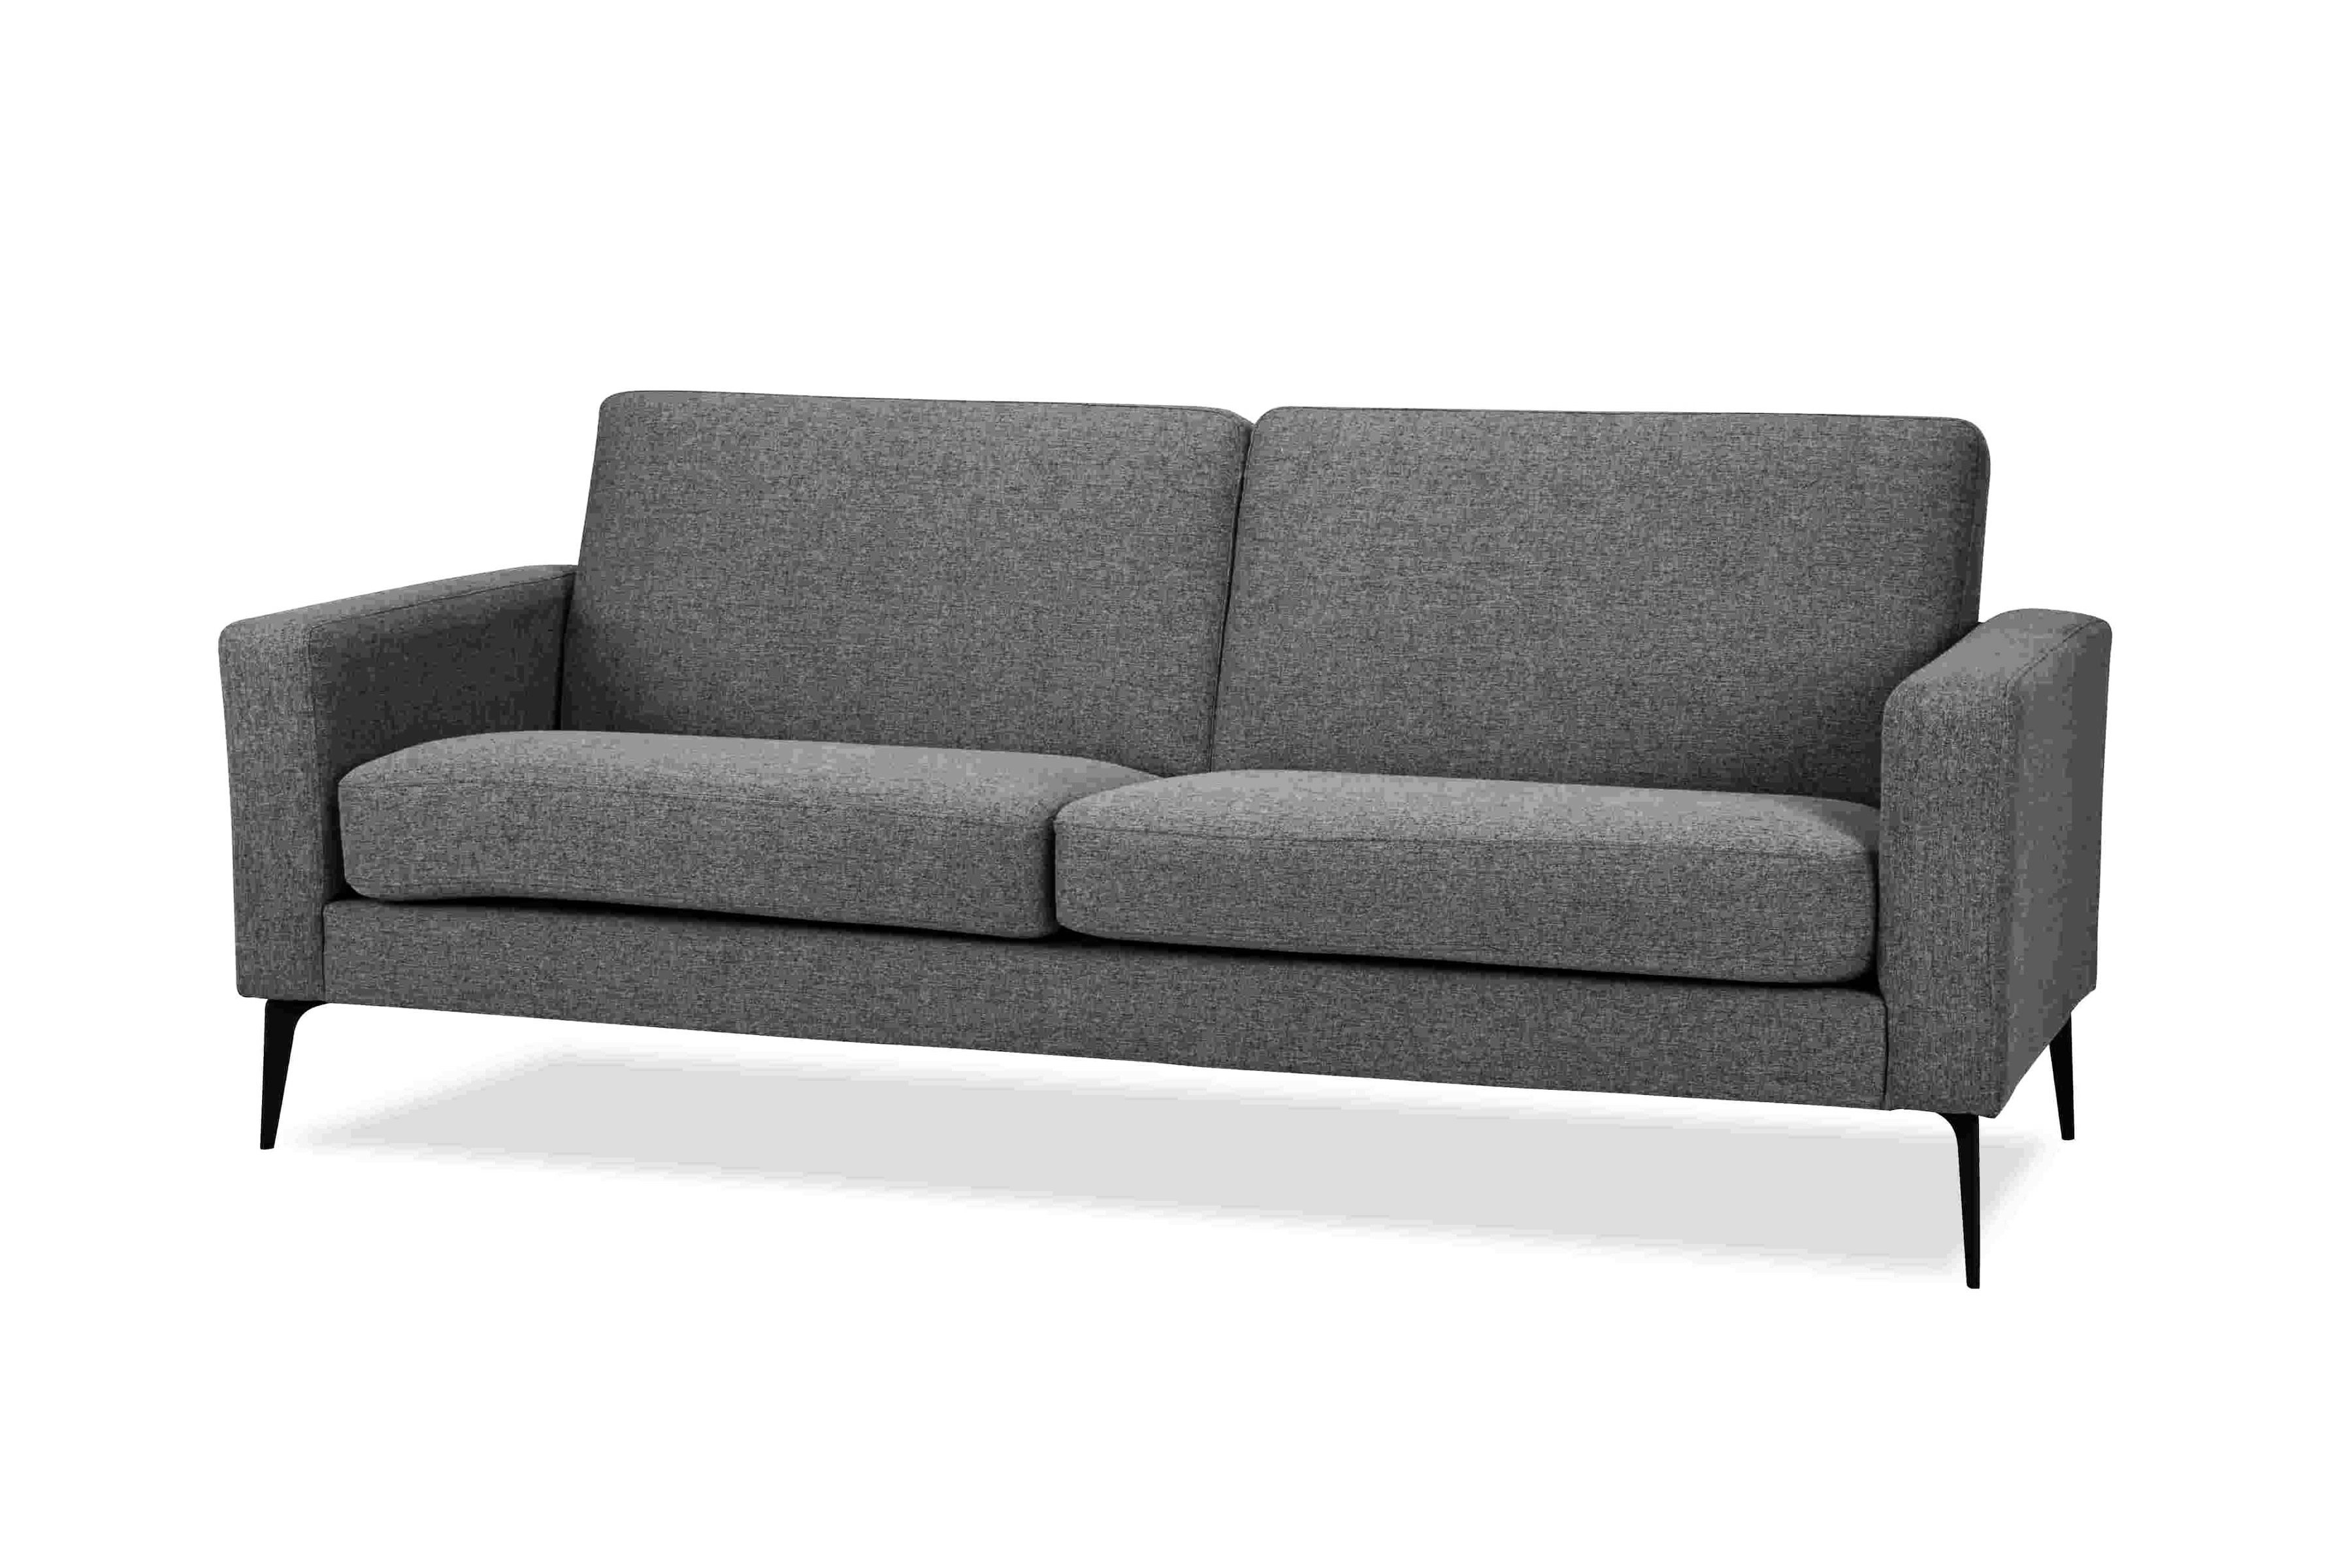 Sofa, Furniture, Couch Pertaining To Owens Loveseats With Cushion (View 11 of 20)